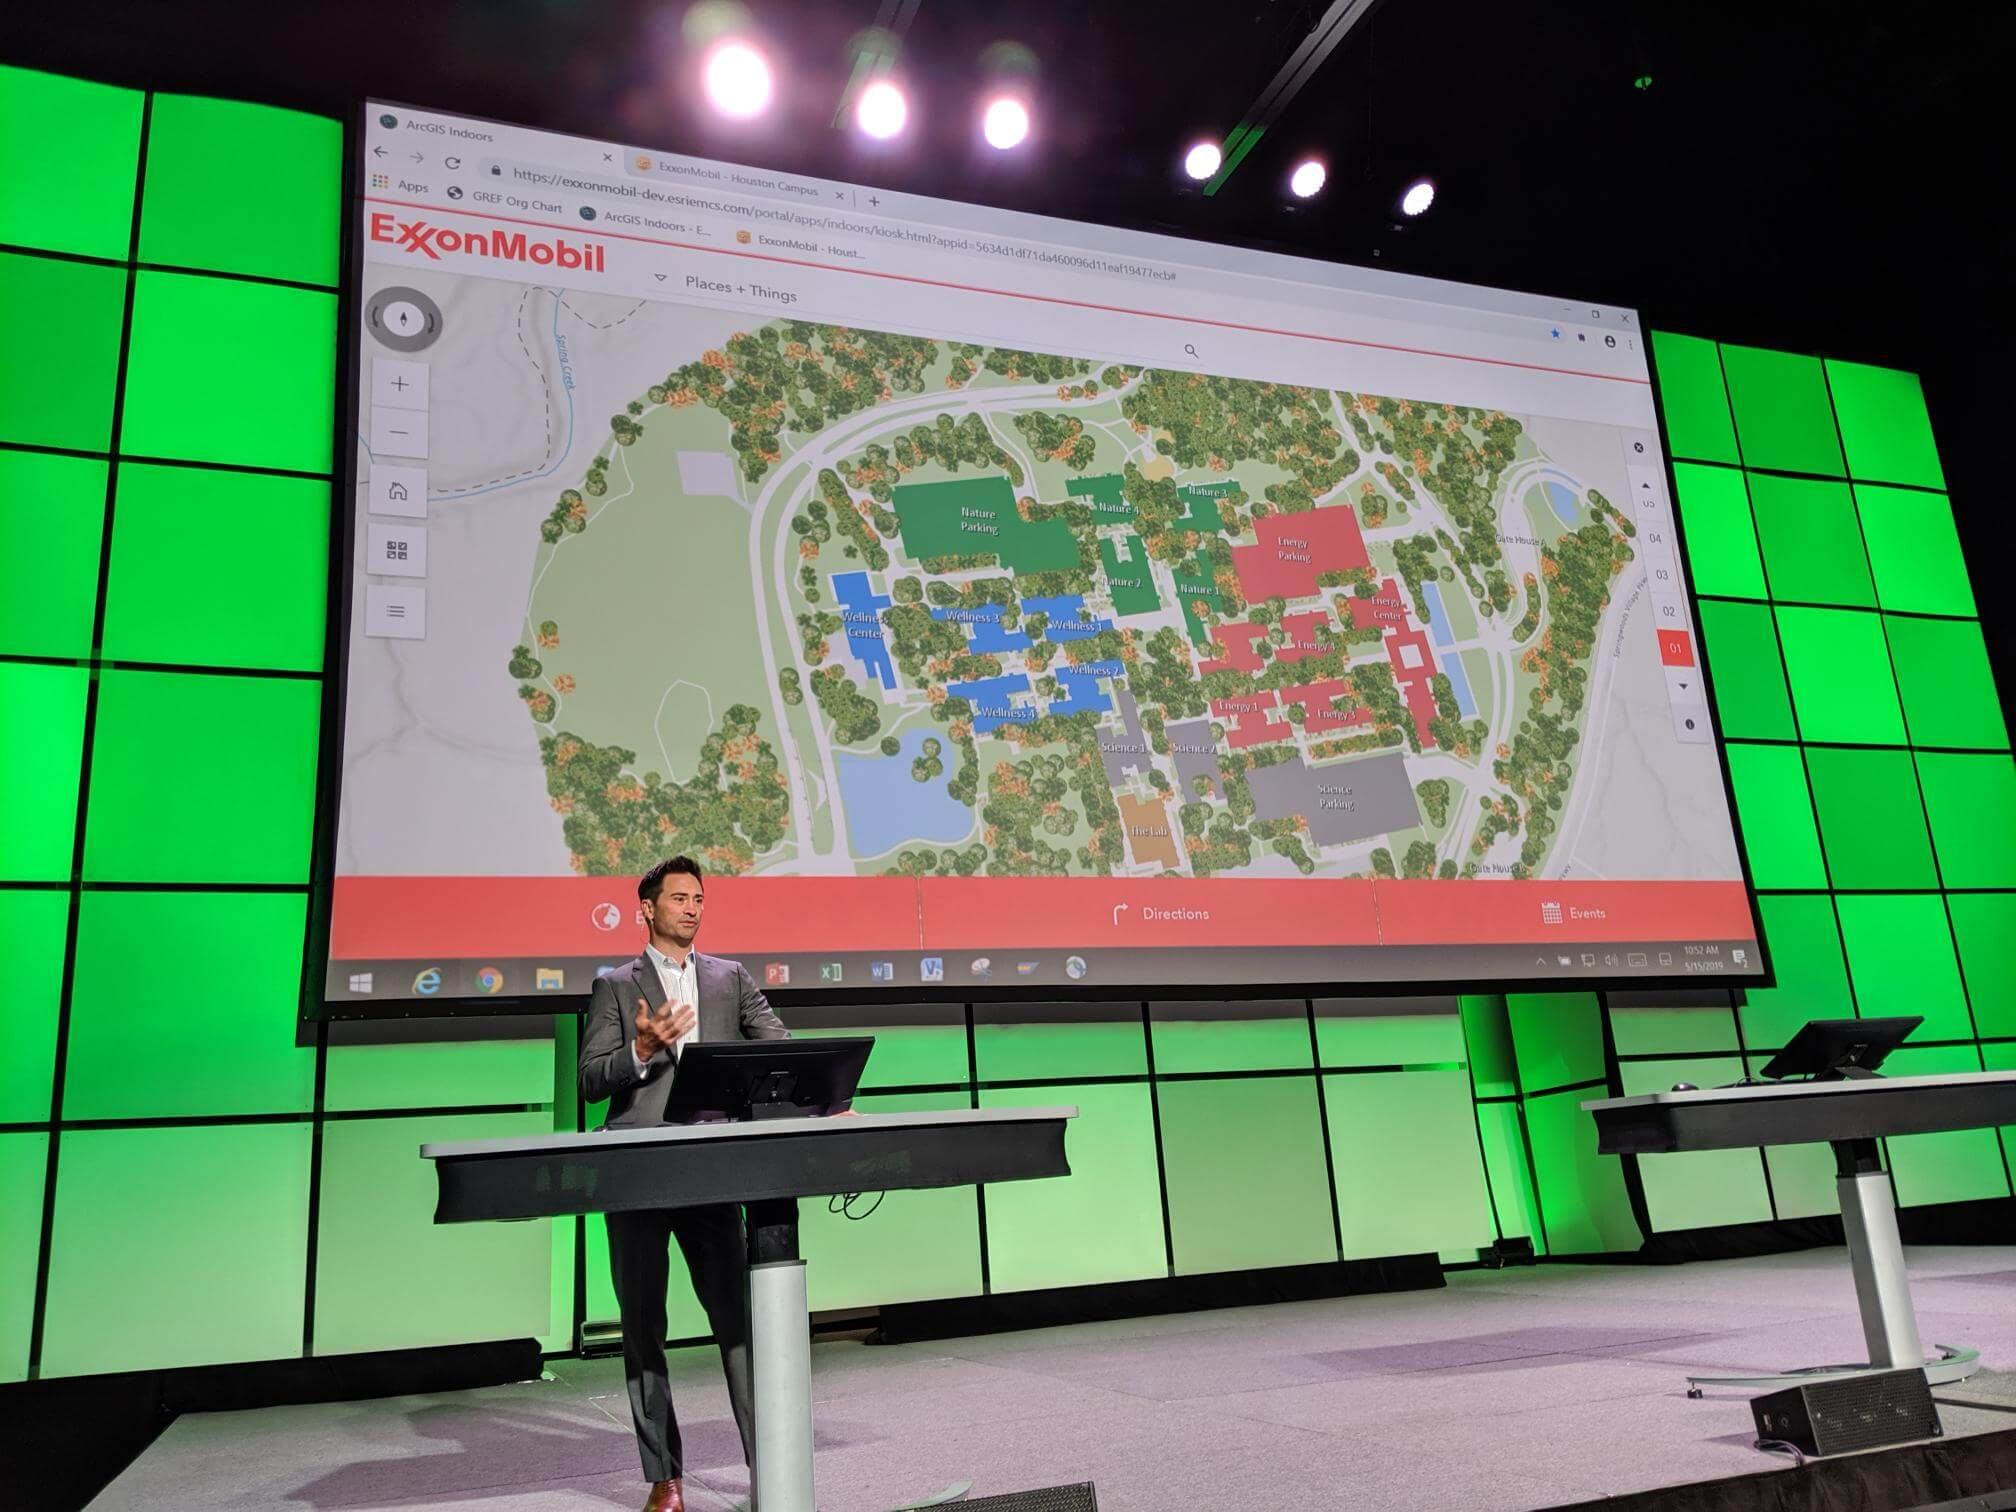 ExxonMobil's smart building expert showing ArcGIS Indoors for Exxon's corporate campus